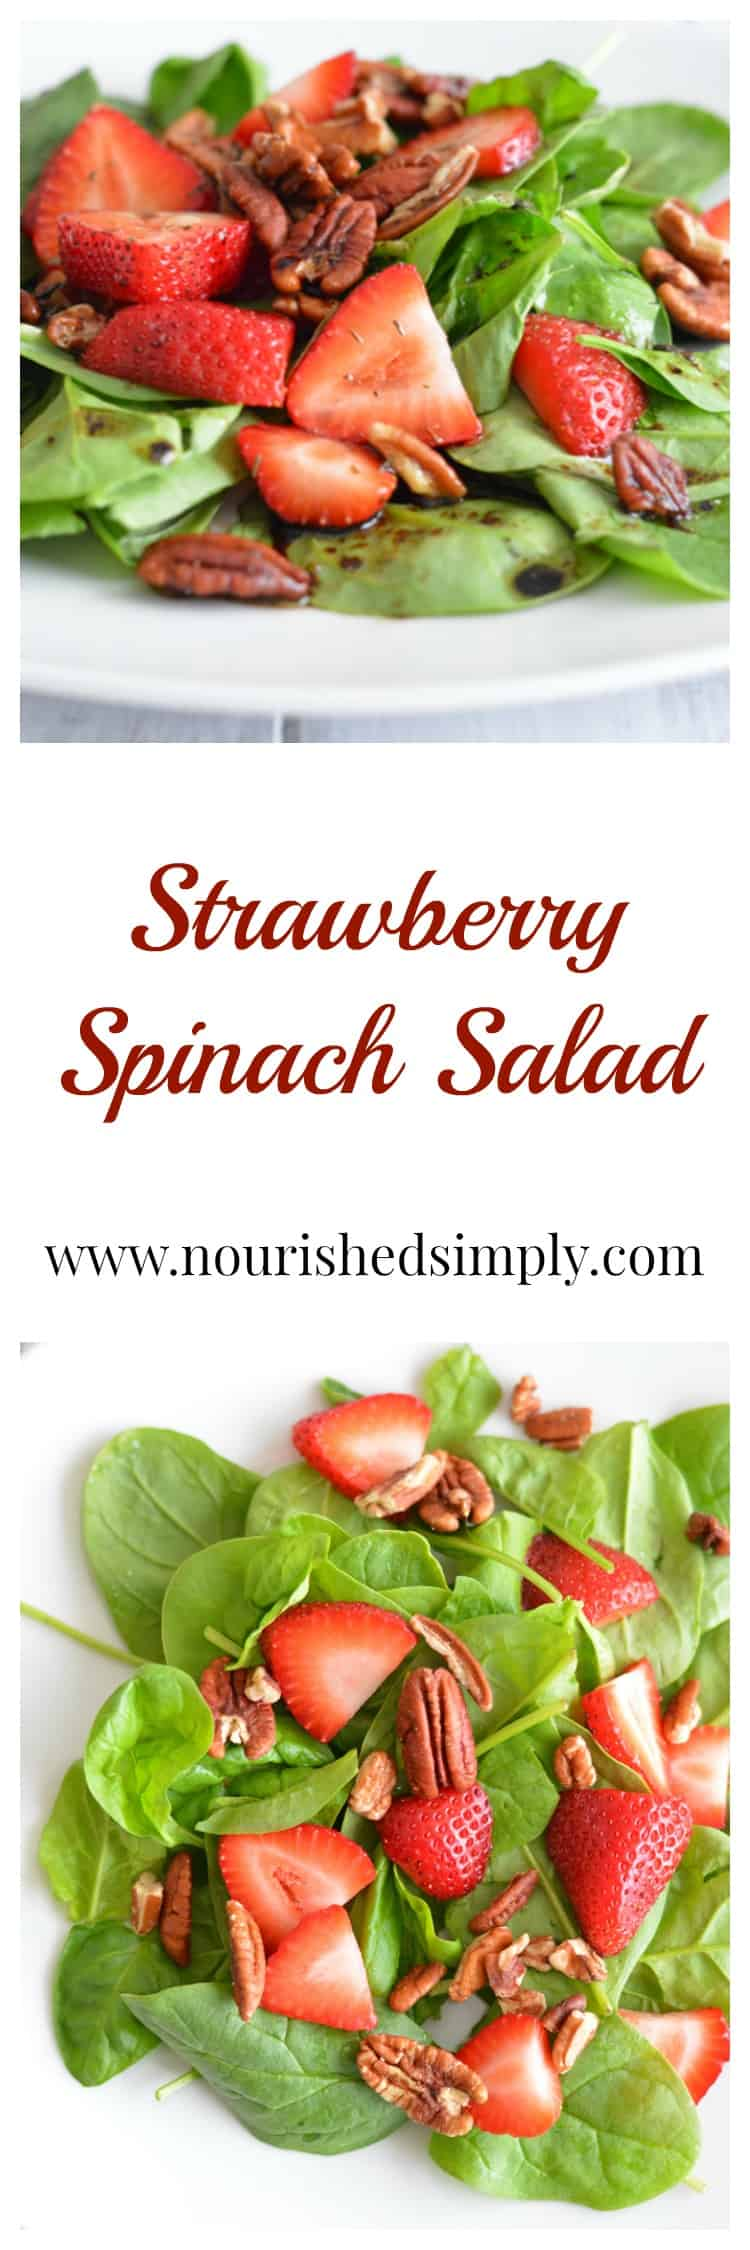 Strawberry Salad is a delicious blend of flavors. Sweet strawberries and savory spinach and balsamic vinegar is the perfect flavor combination.